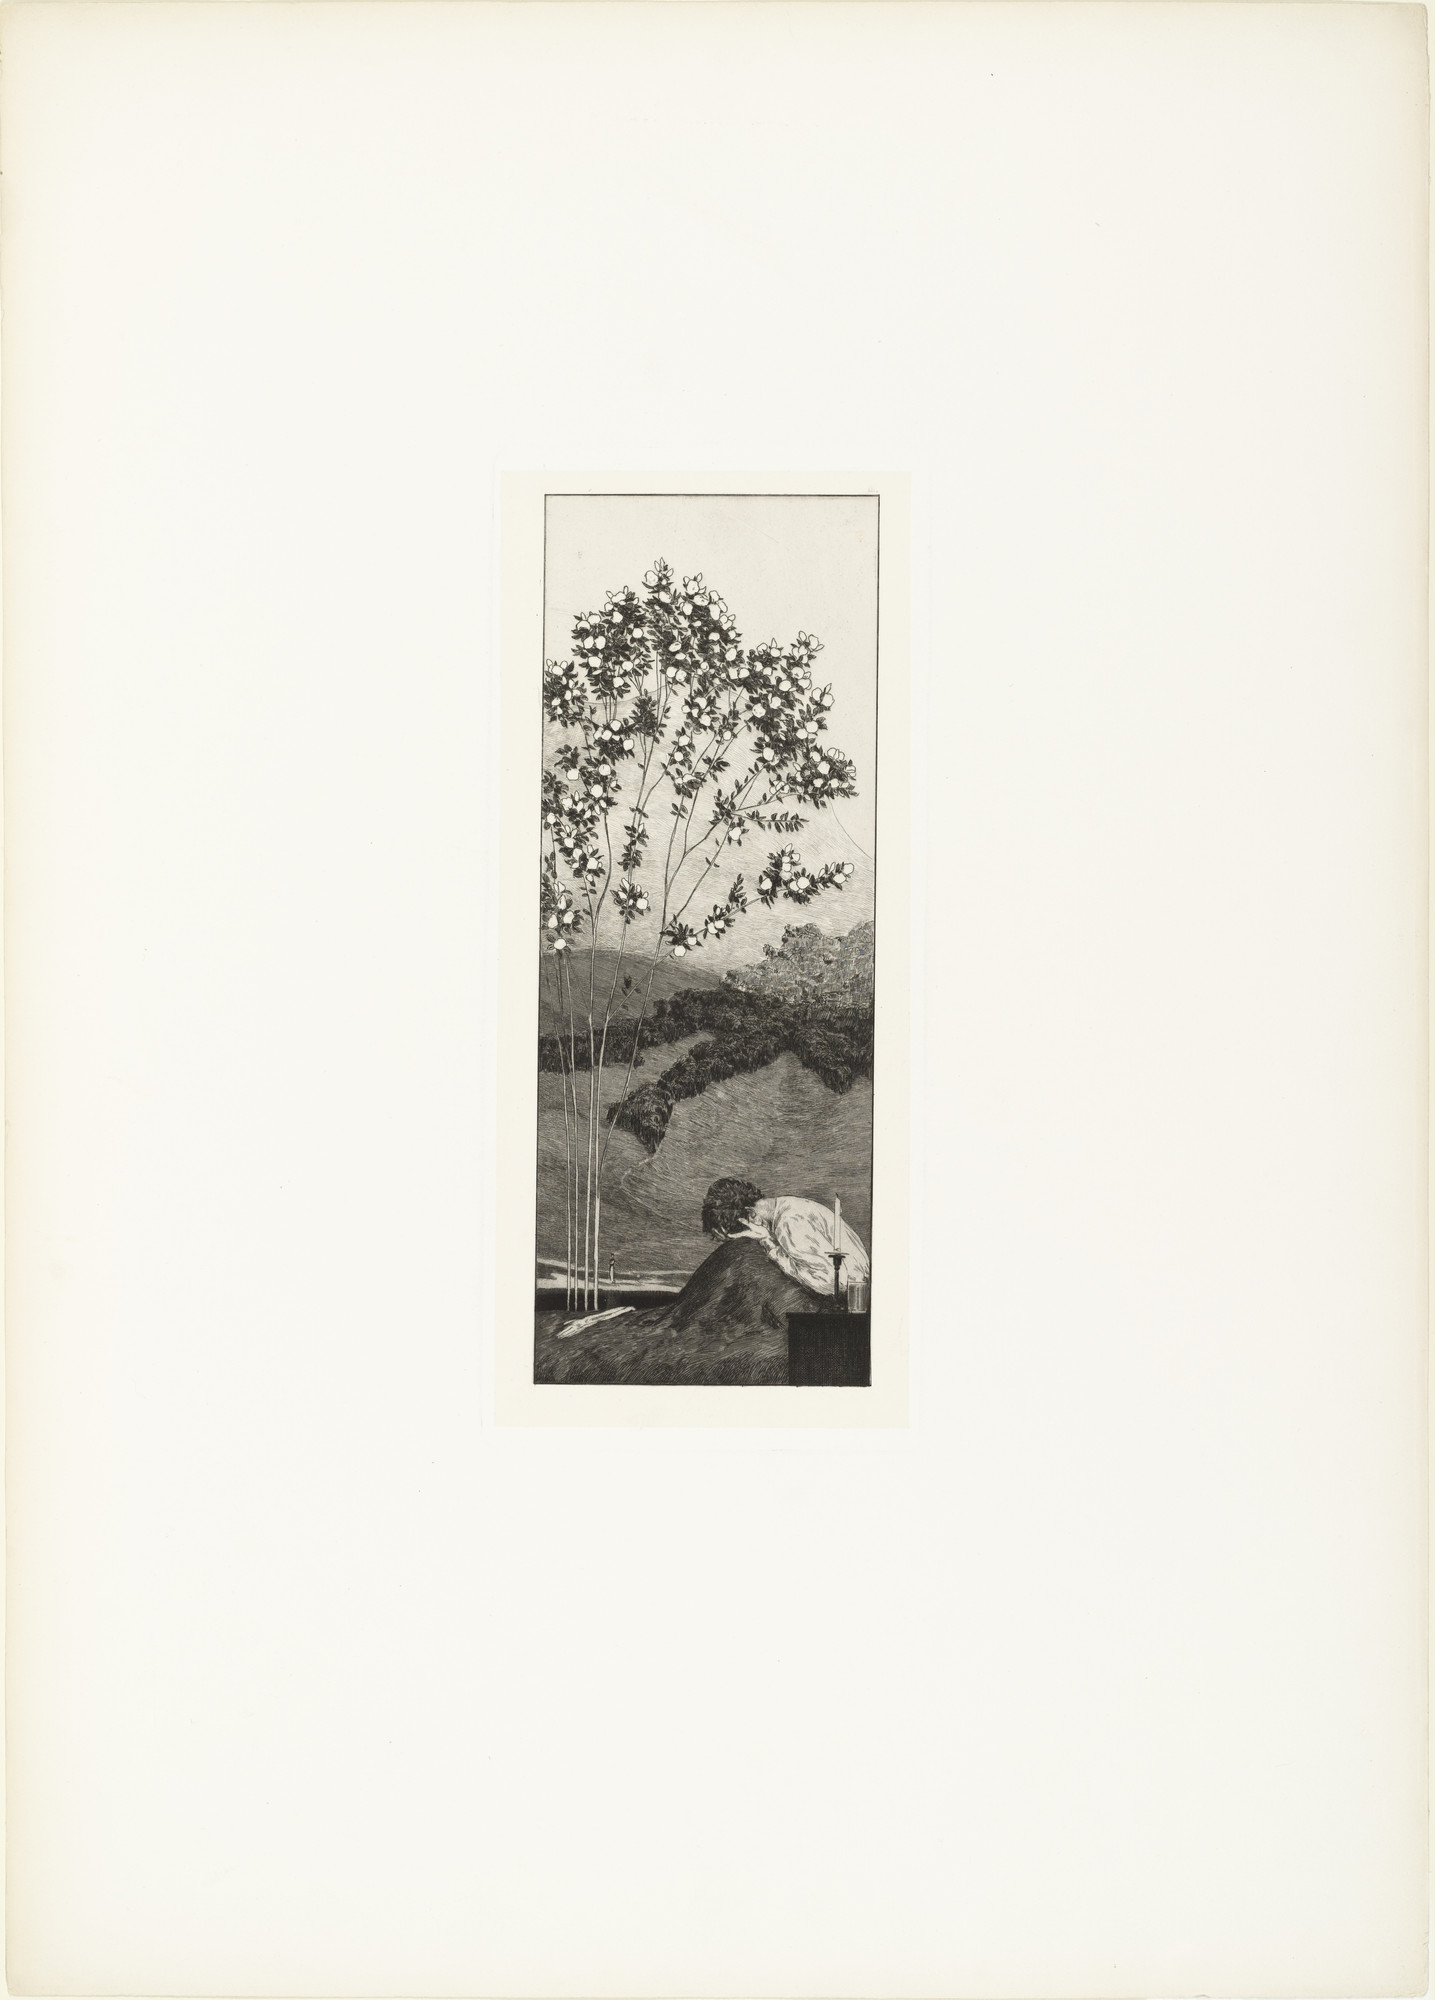 Max Klinger. Yearnings (Wünsche) (plate III) from A Glove, Opus VI (Ein Handschuh, Opus VI). 1881 (print executed 1880)